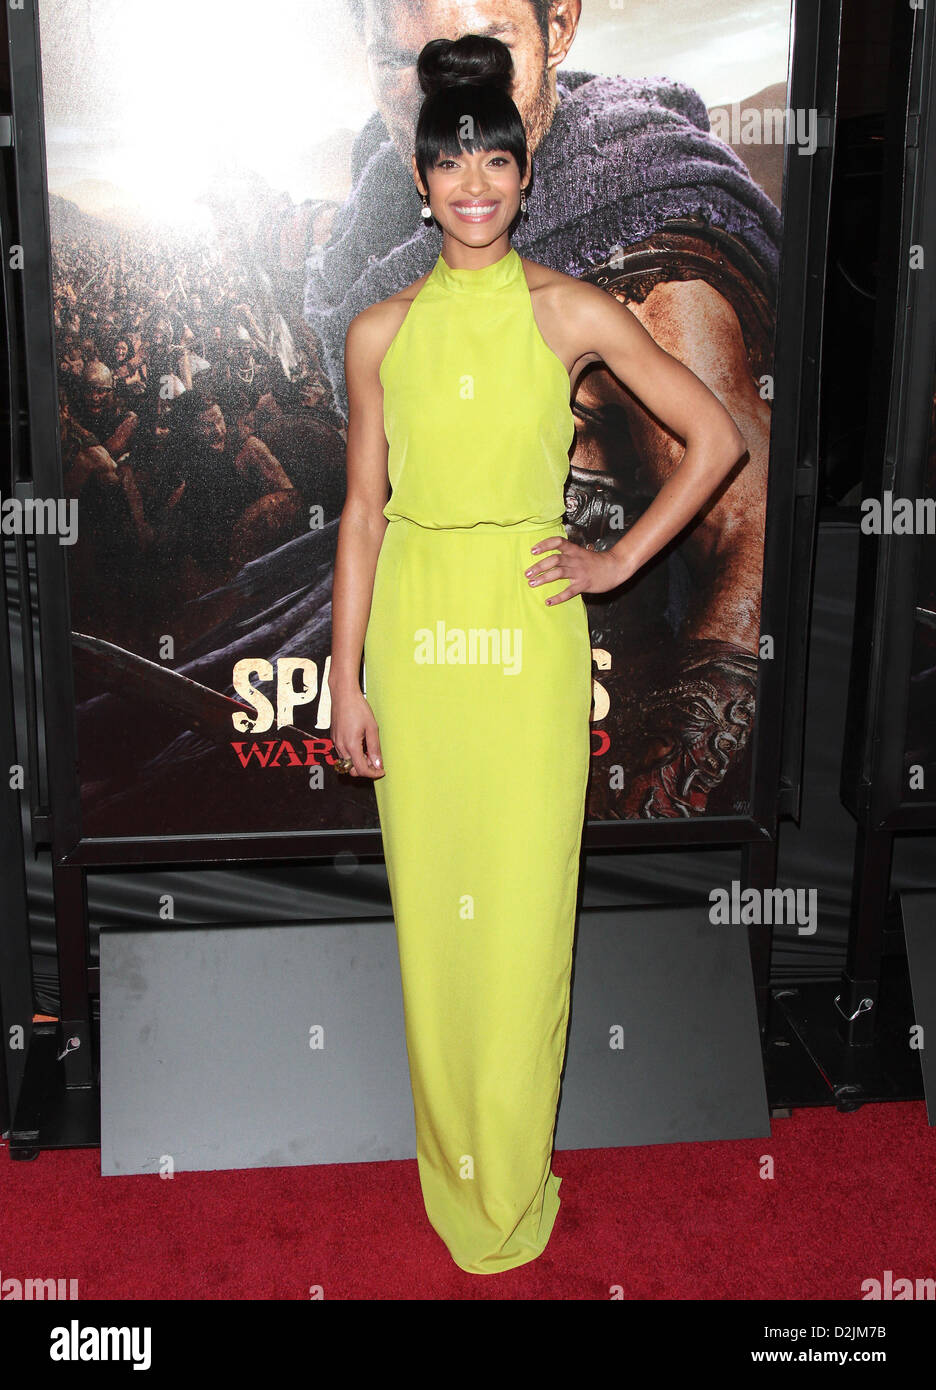 CYNTHIA ADDAI-ROBINSON PREMIERE OF SPARTACUS: WAR OF THE DAMNED LOS ANGELES CALIFORNIA USA 22 January 2013 Stock Photo